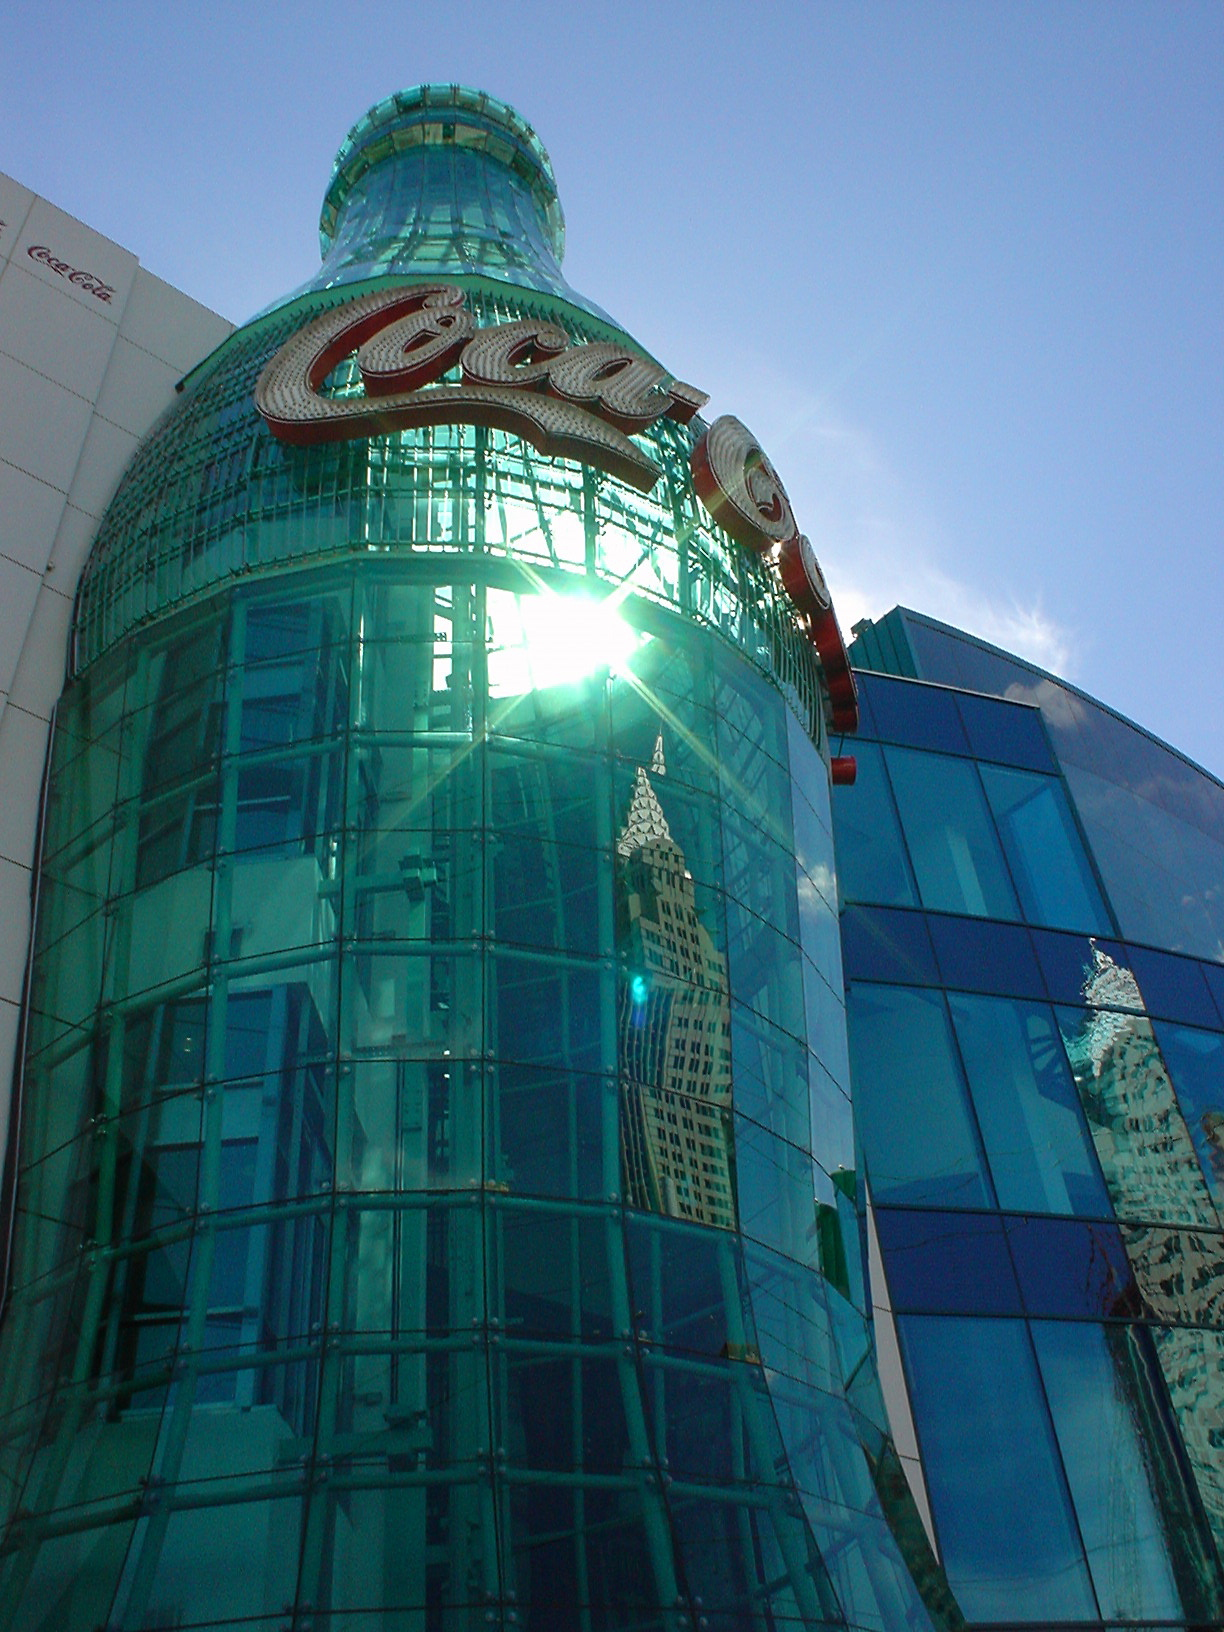 coke bottle building atrium - not property released